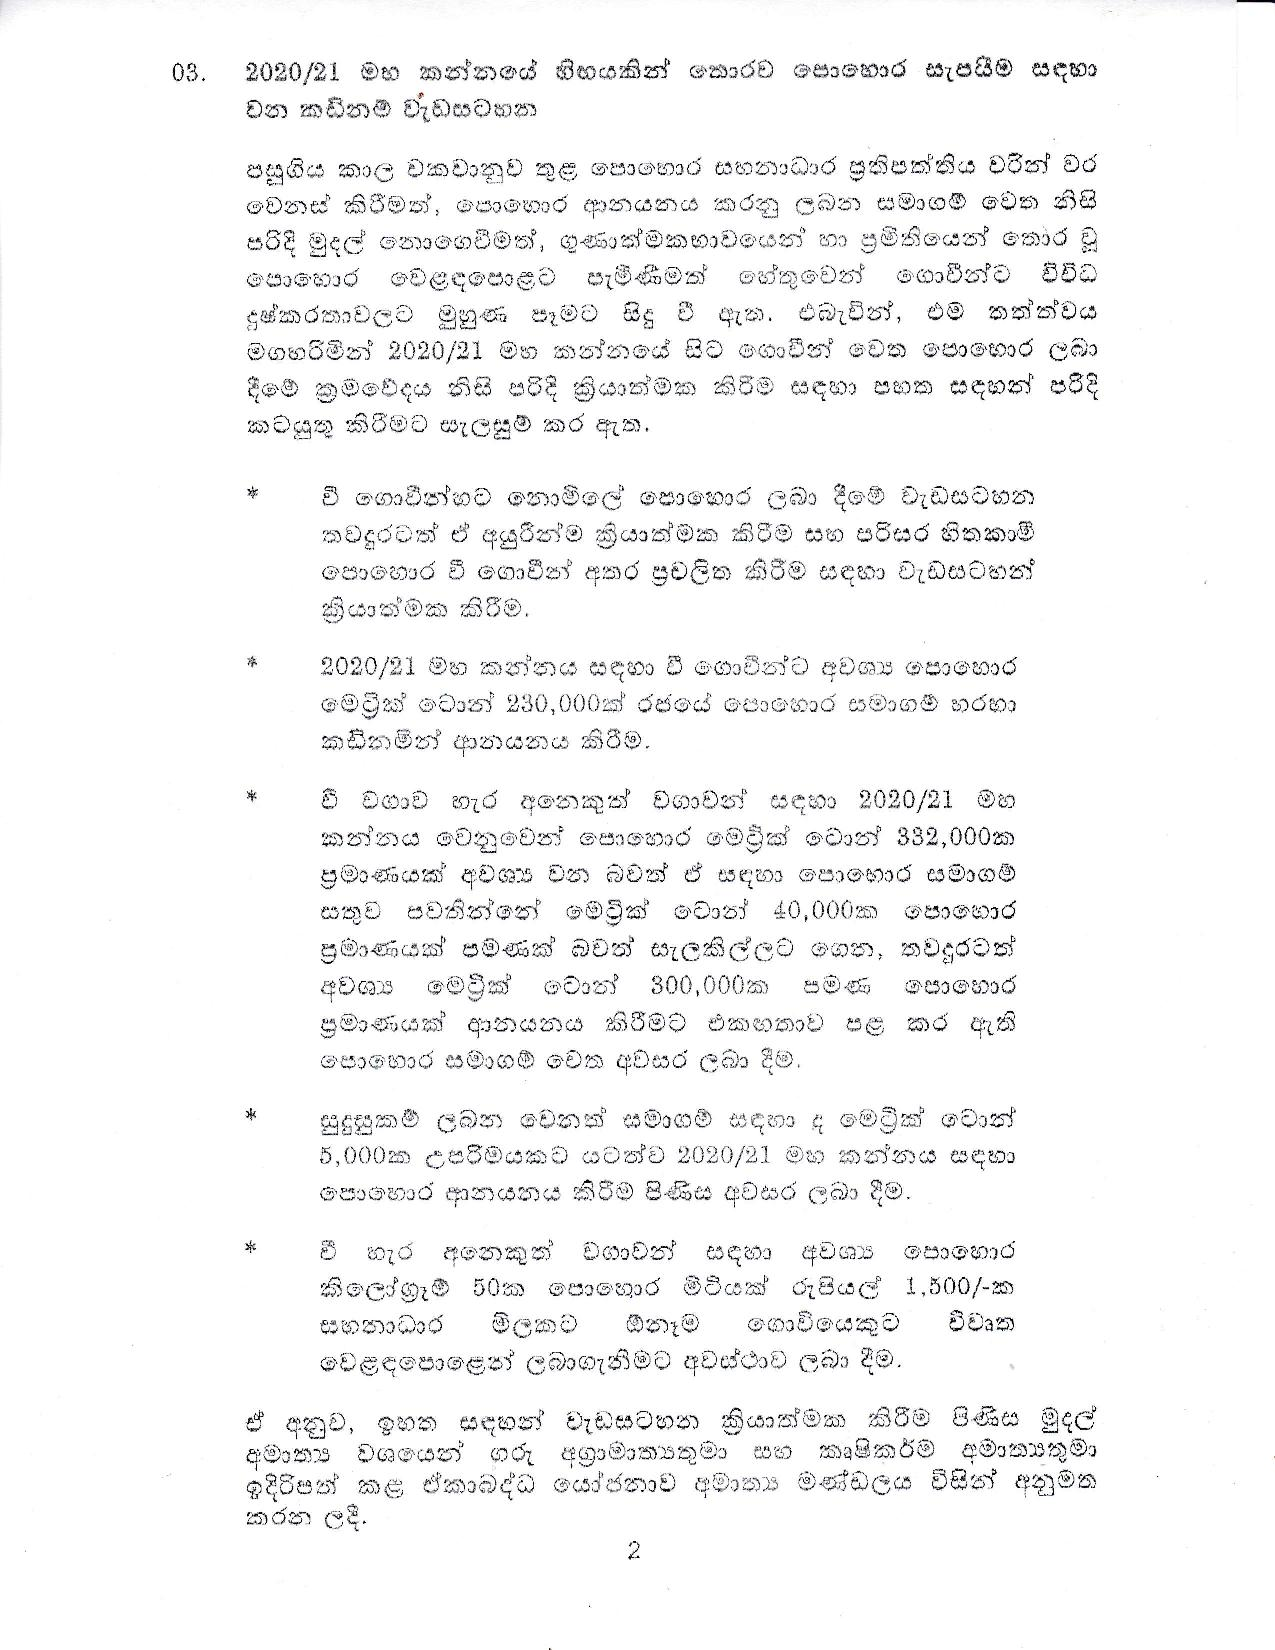 Cabinet Decision on 09.09.2020 page 002